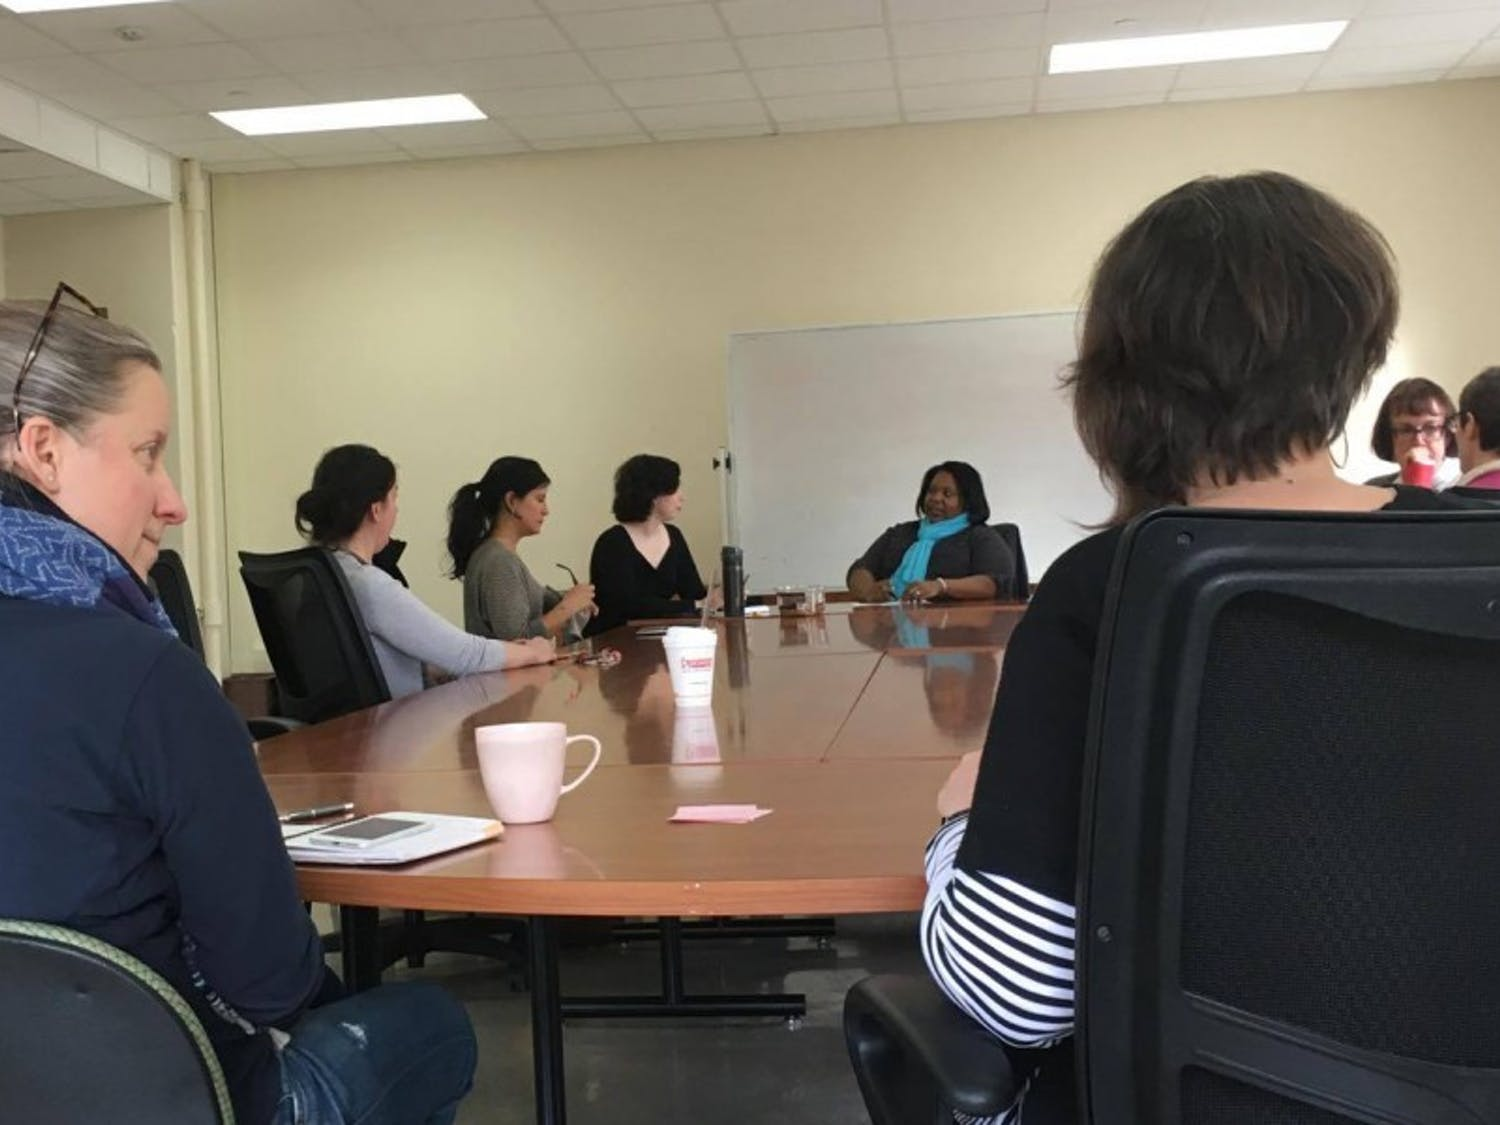 A group of UW-Madison faculty, staff and students exchanged thoughts on trigger warnings and maintaining comfortable space in the classroom, or not.